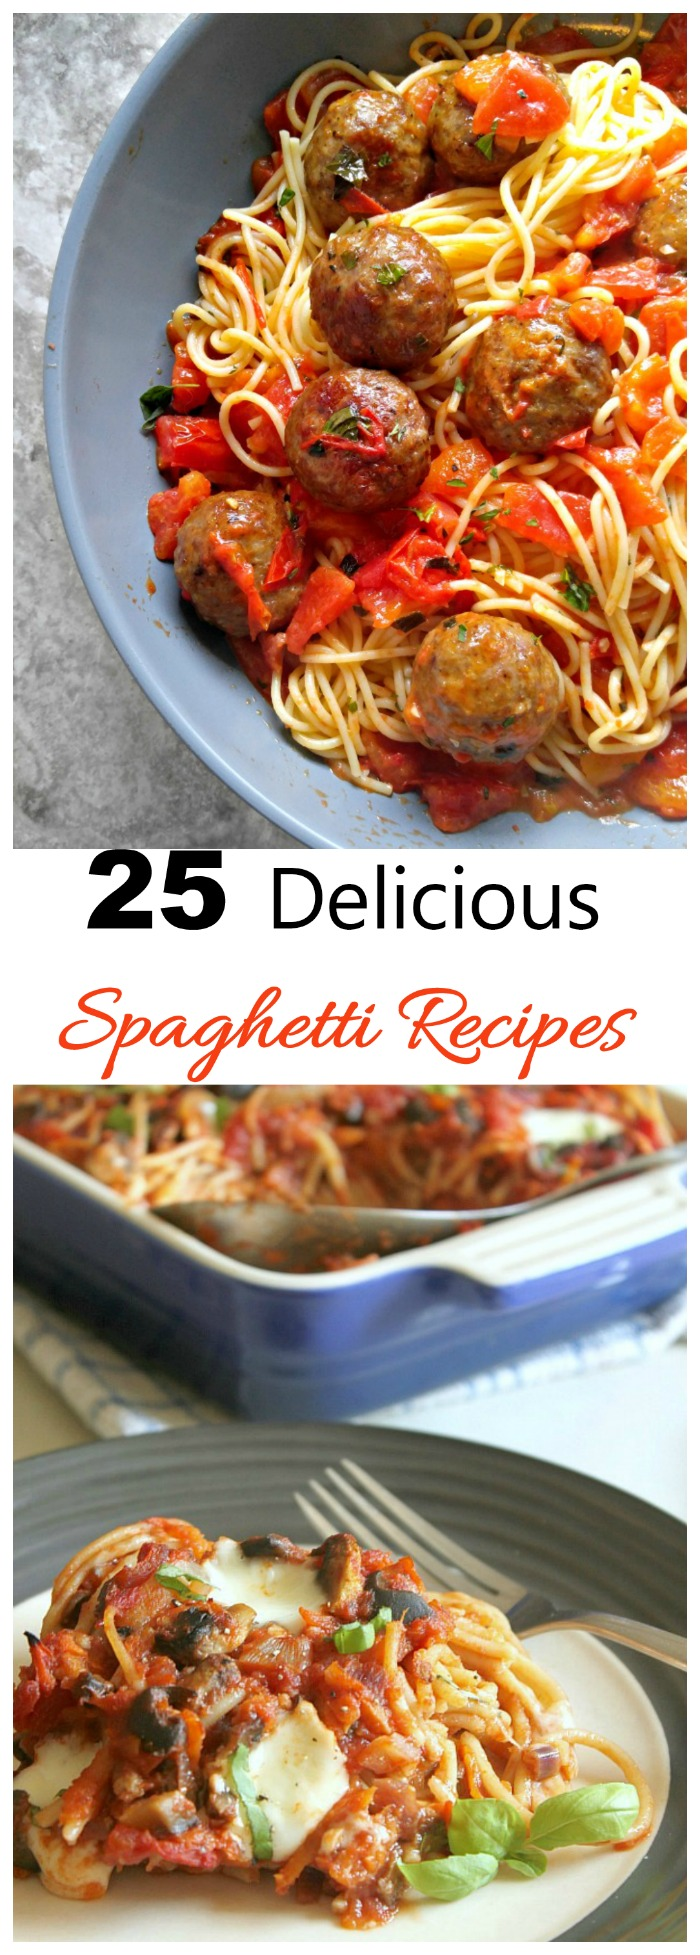 Here are over 25 delicious spaghetti recipes. Make Italian night a weekly feature at your house. #spaghettirecipes #spaghettisauce